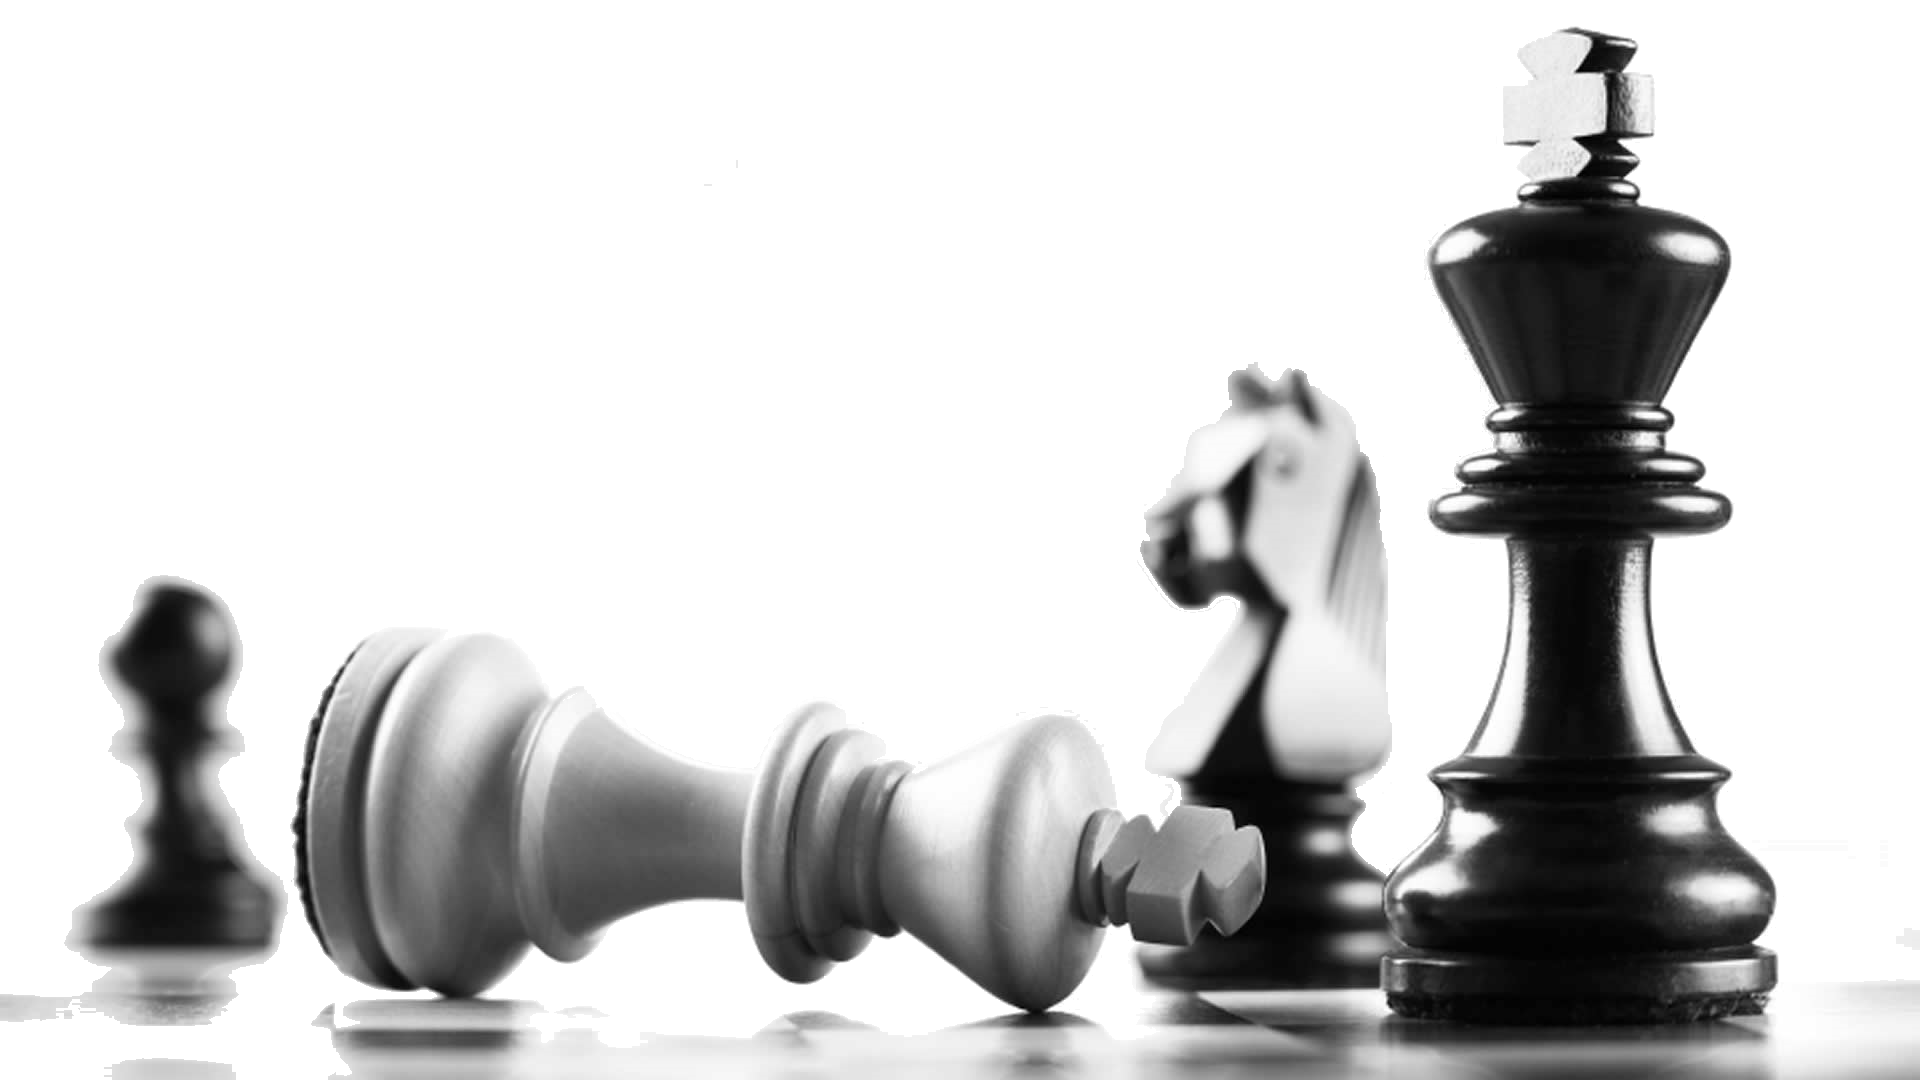 hq chess pieces transparent hd photo #39318